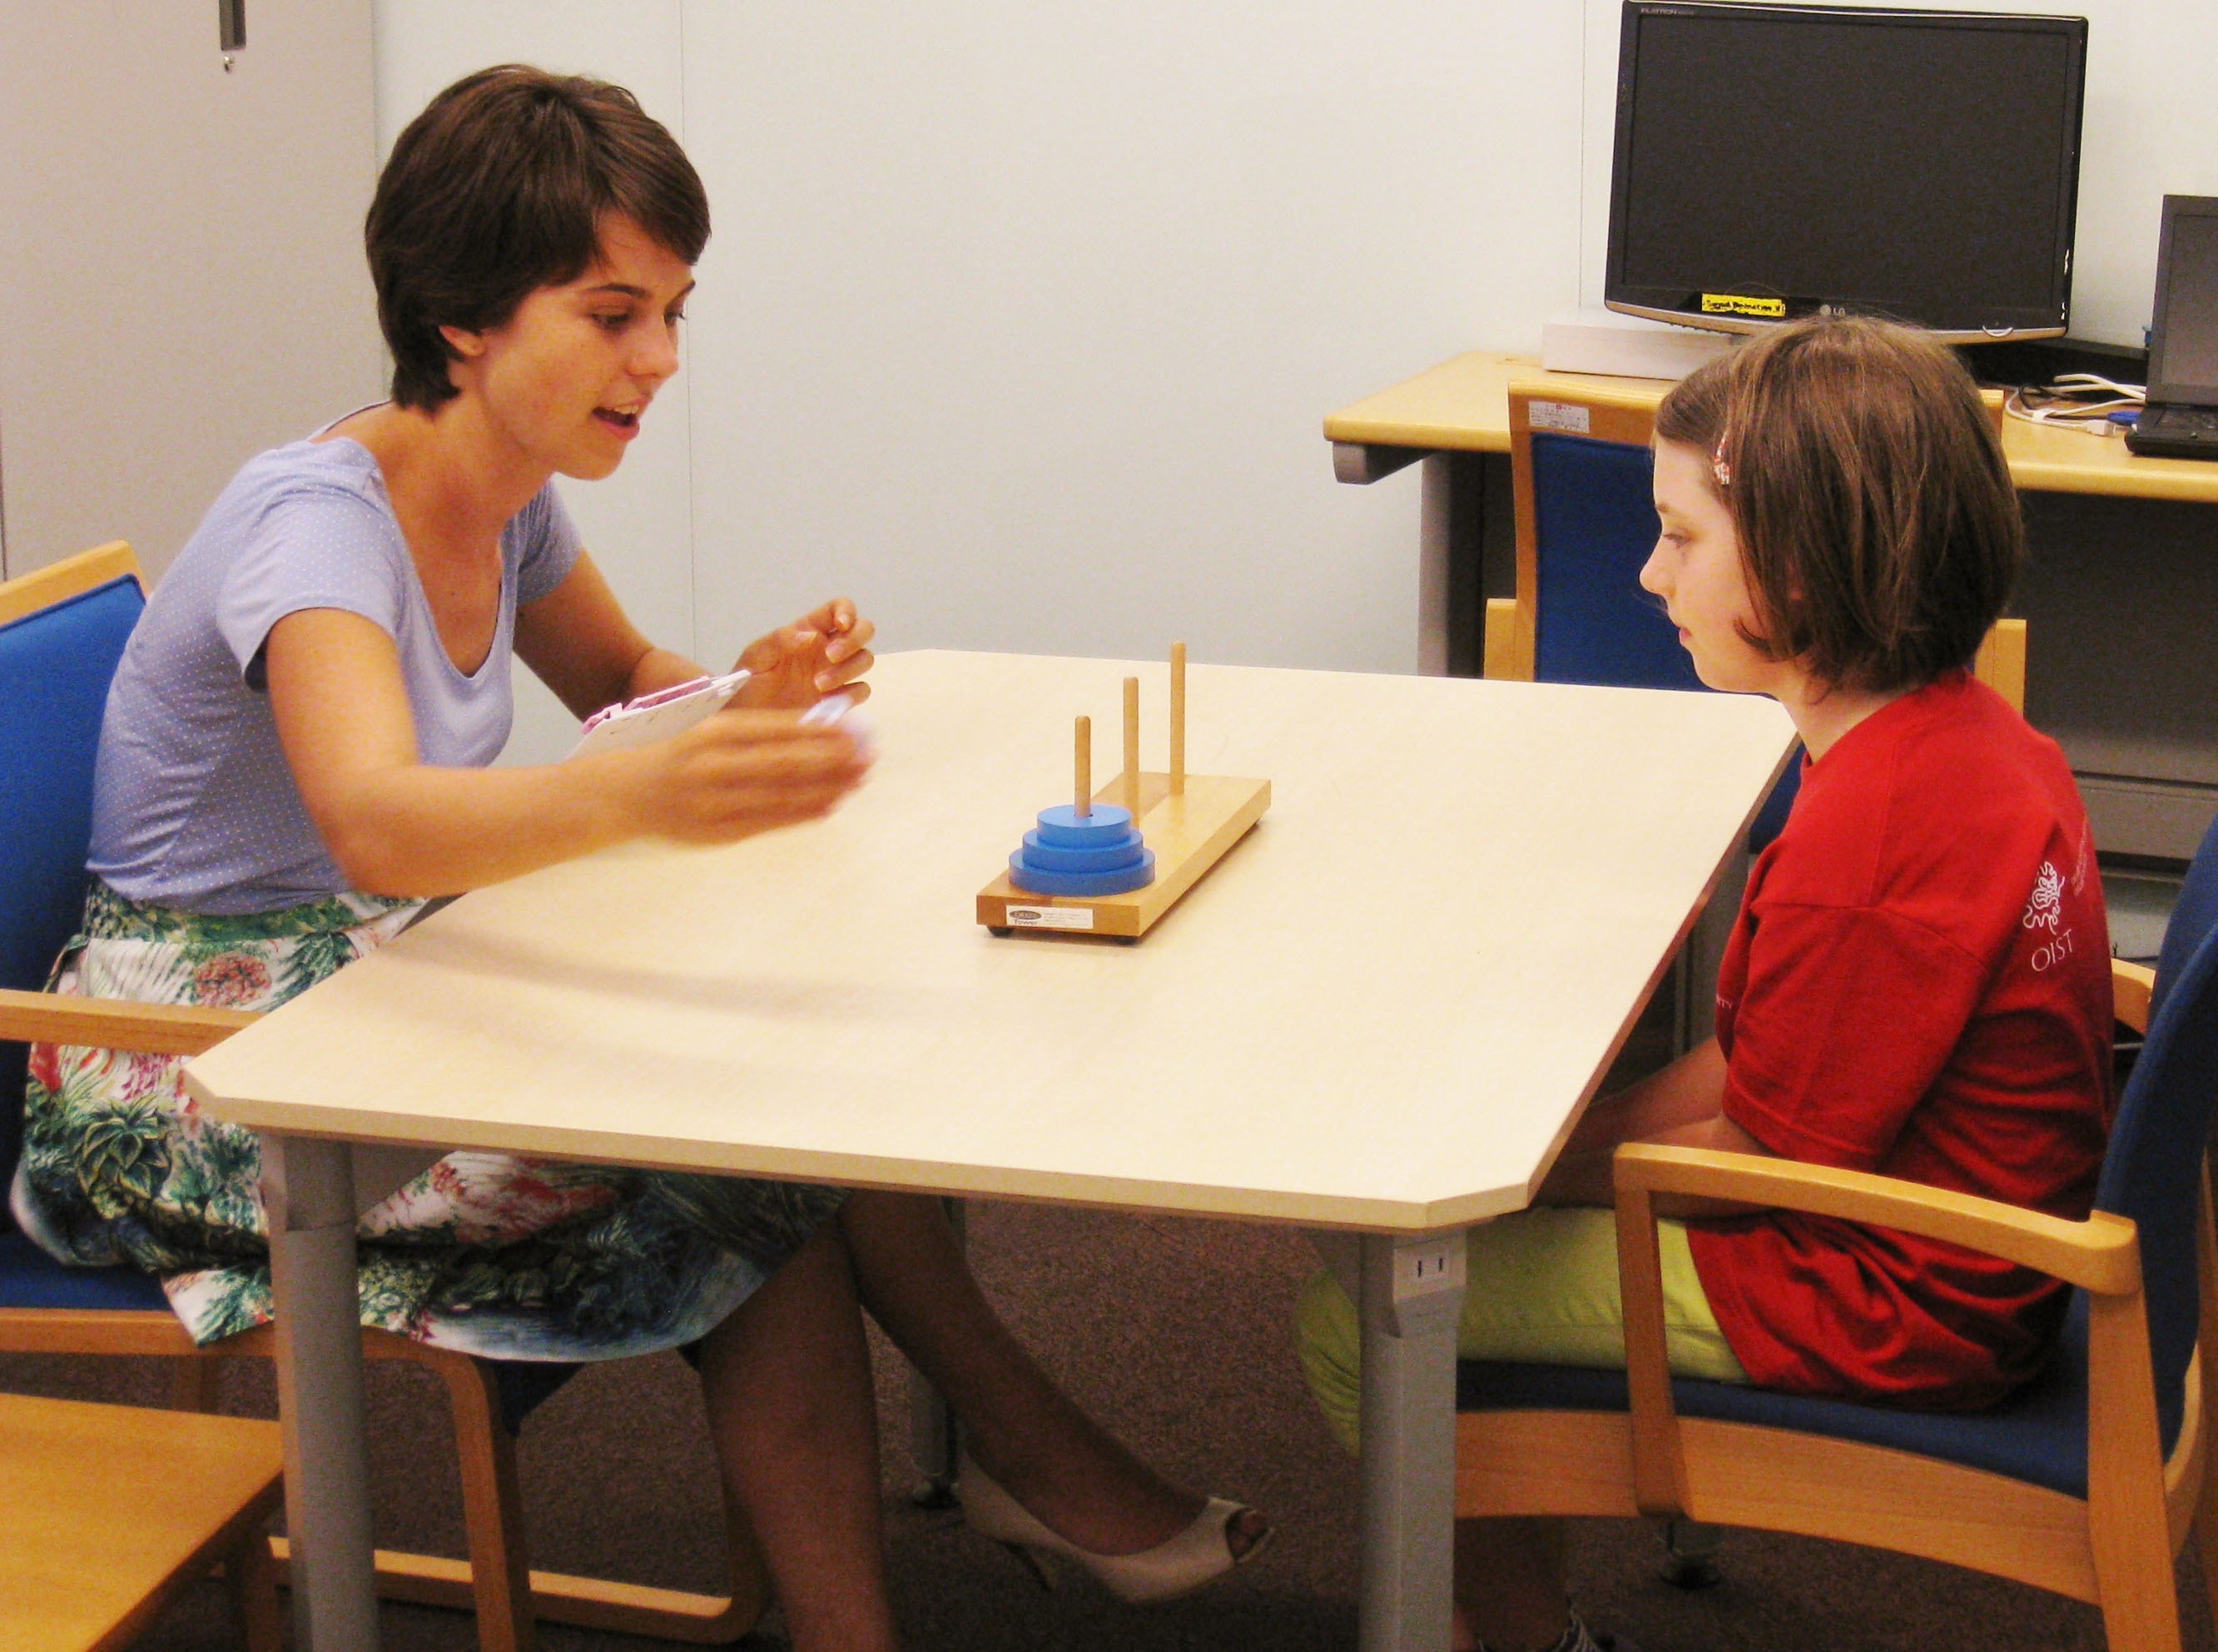 Researcher and study participant in the Children's Research Centre